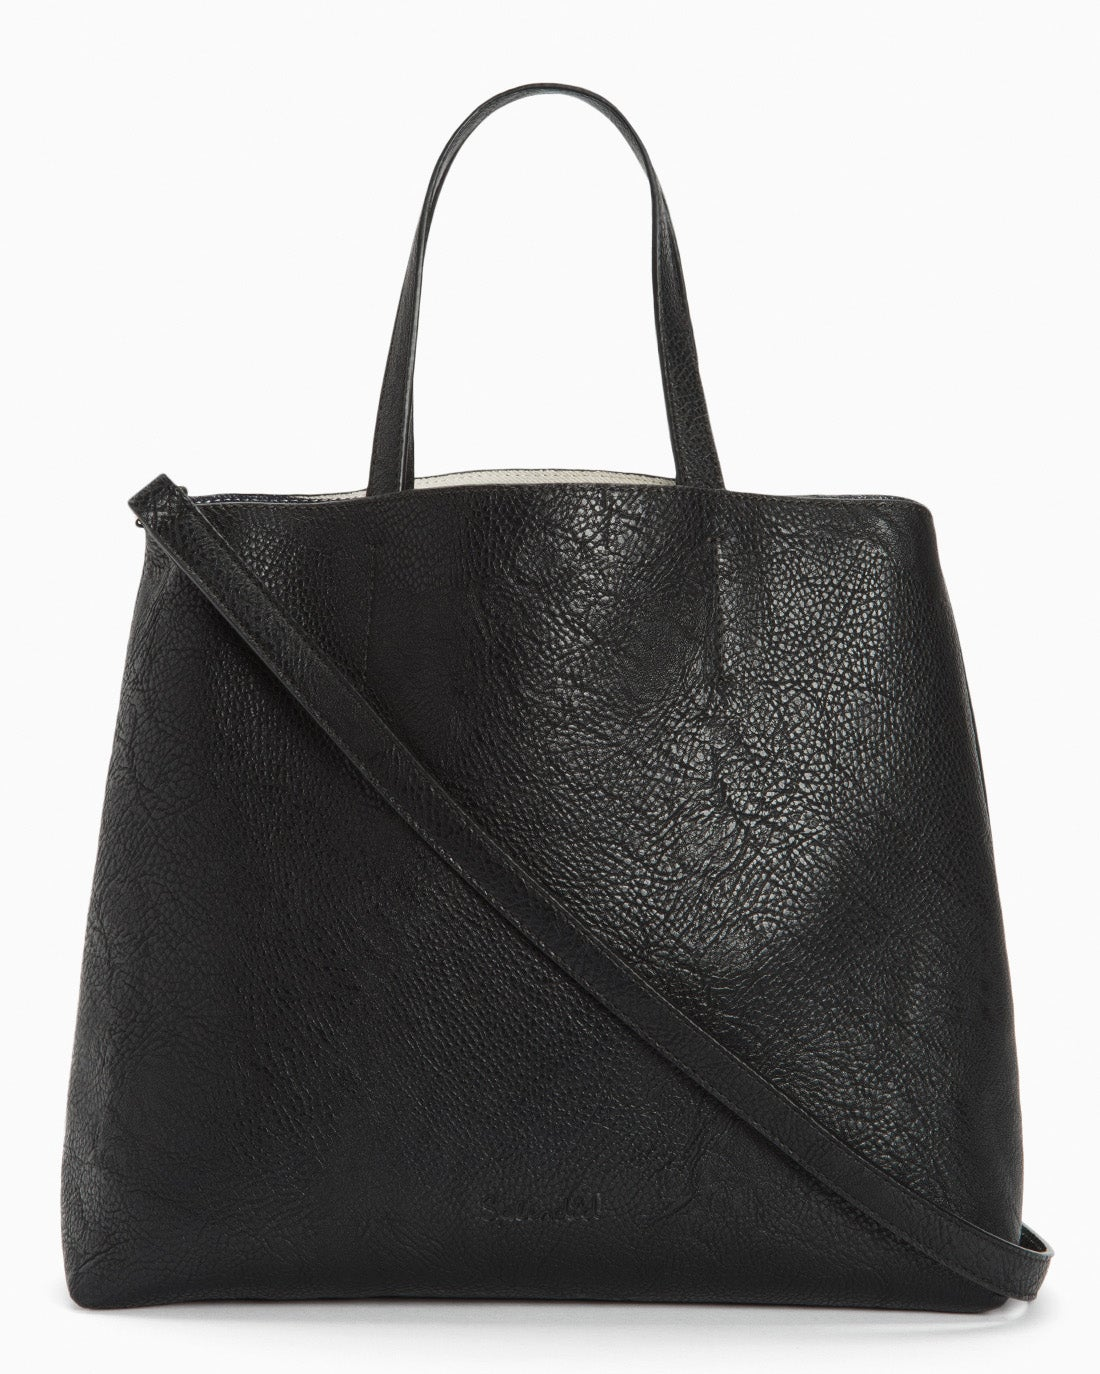 Splendid Women's Ashton Tote